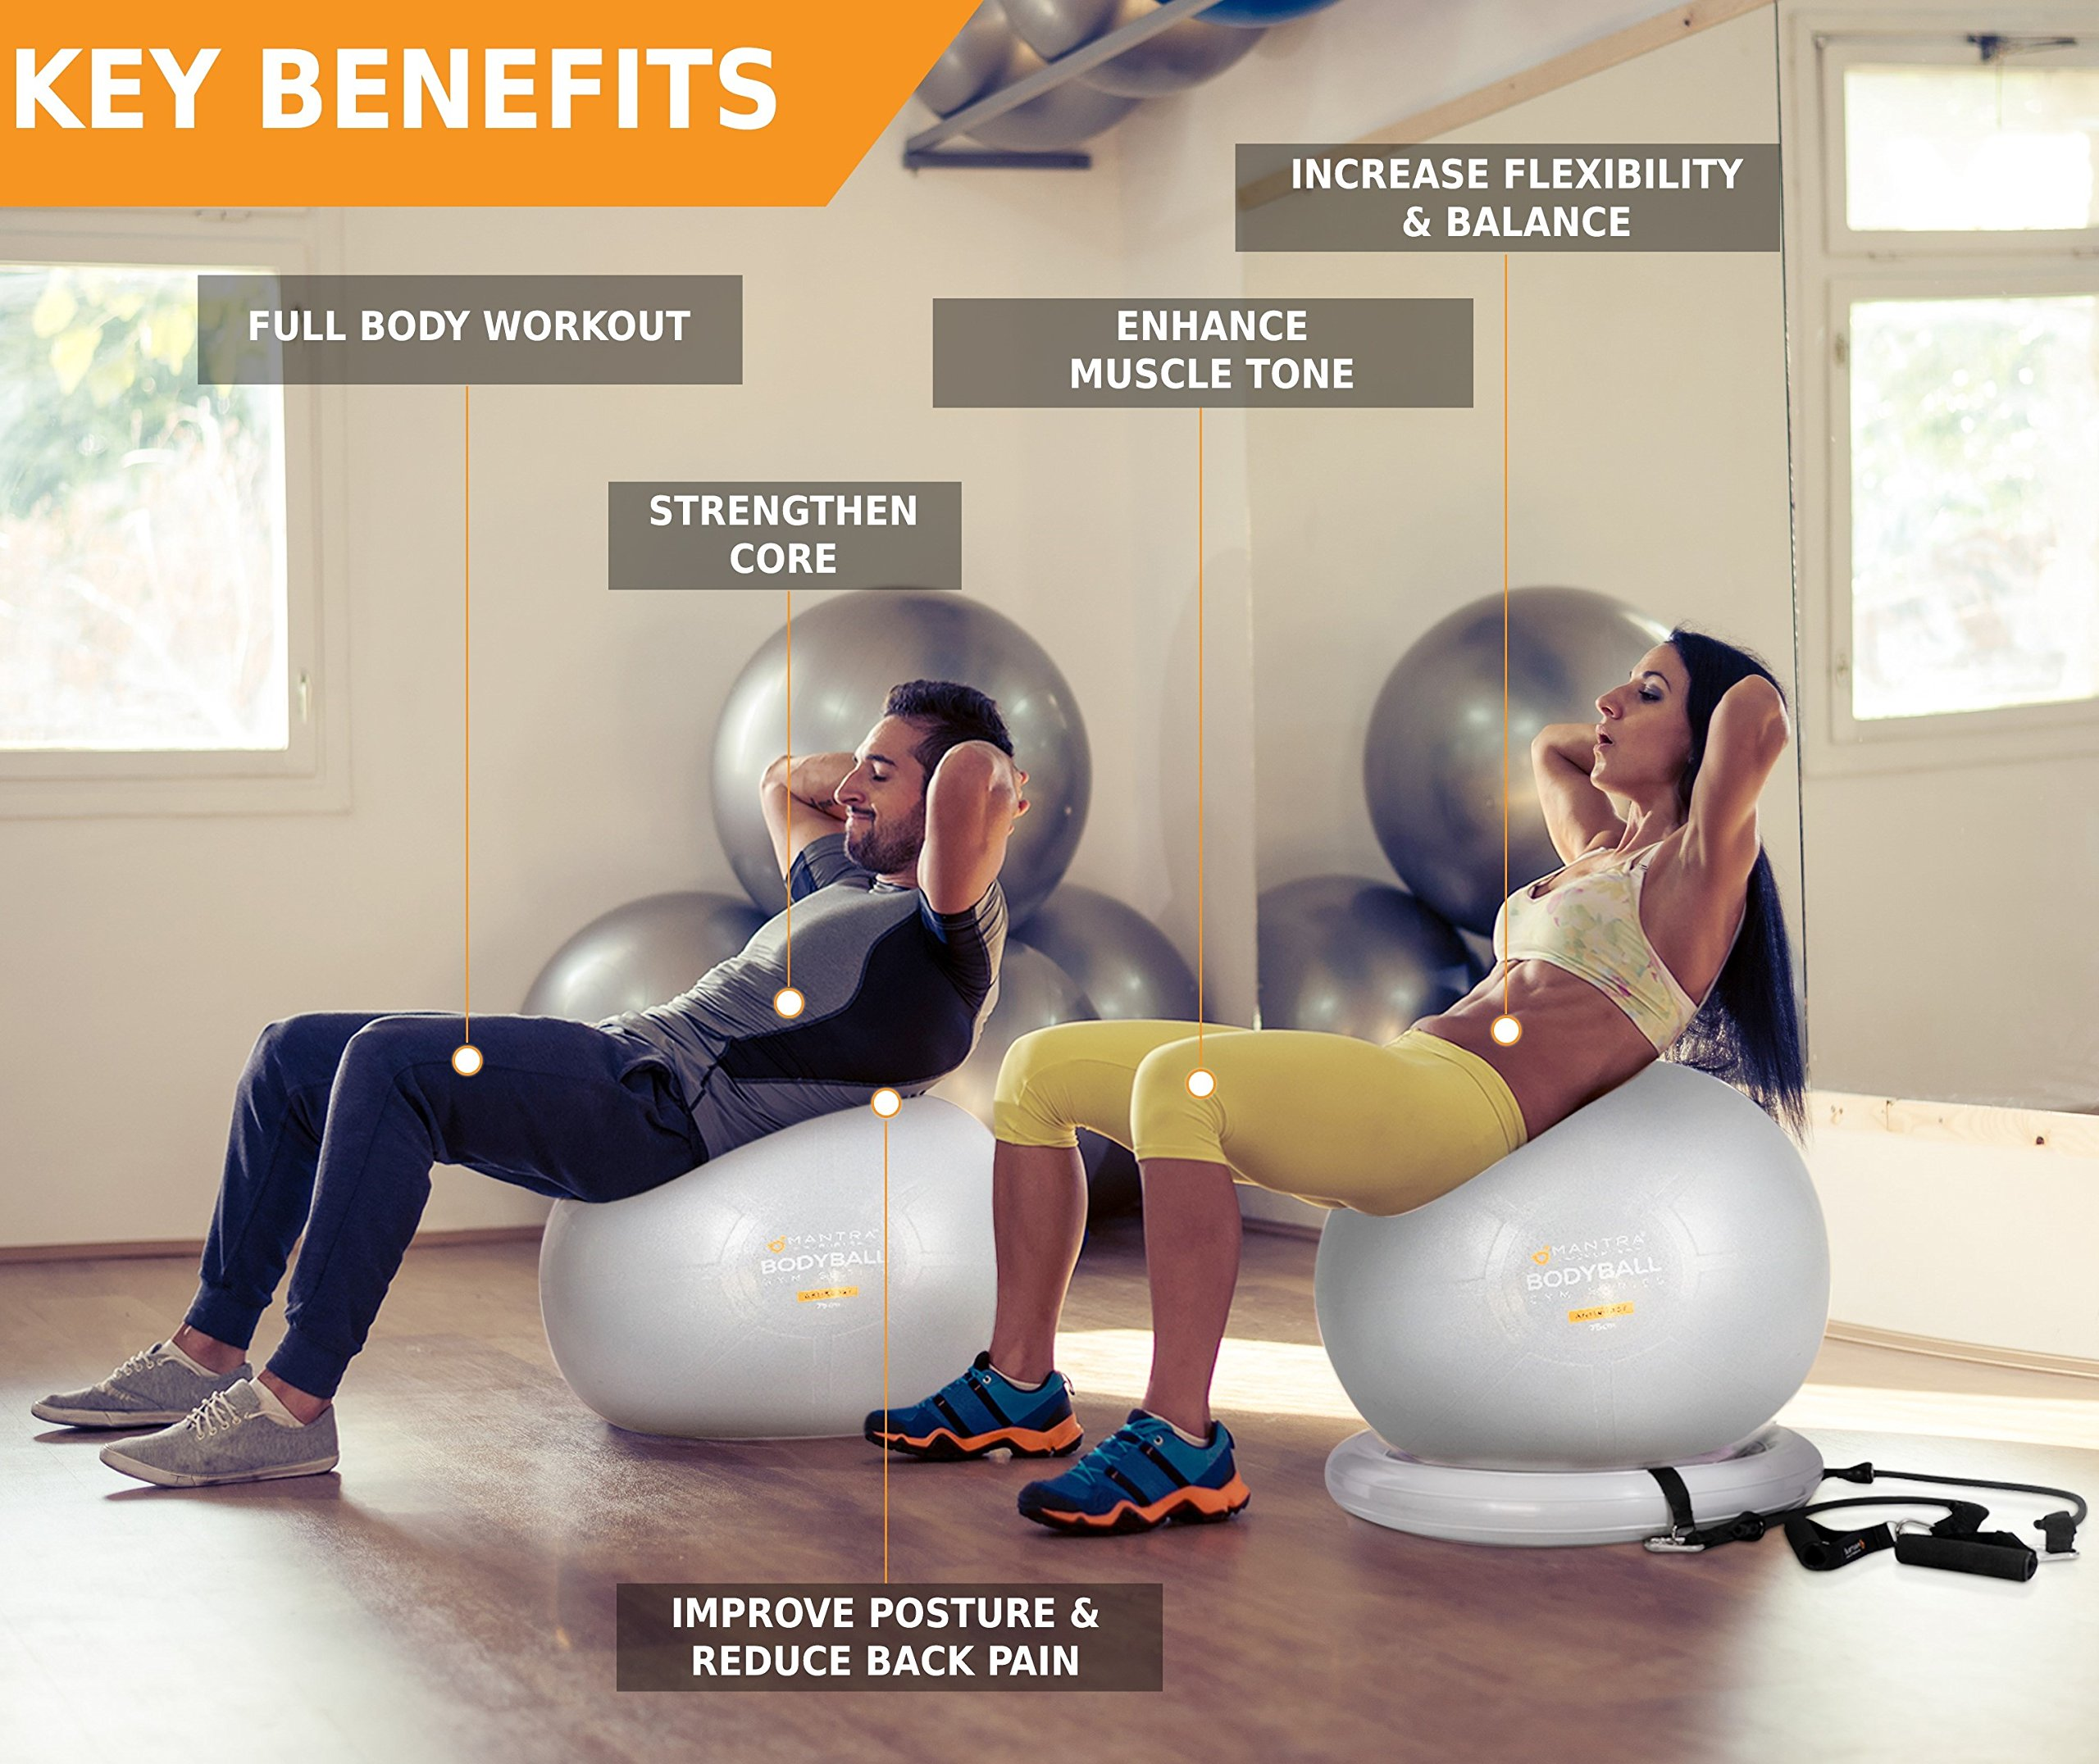 Exercise Ball Chair - 65cm & 75cm Yoga Fitness Pilates Ball & Stability Base for Home Gym & Office - Resistance Bands, Workout Poster & Pump. Improves Balance, Core Strength & Posture - Men & Women by Mantra Sports (Image #7)